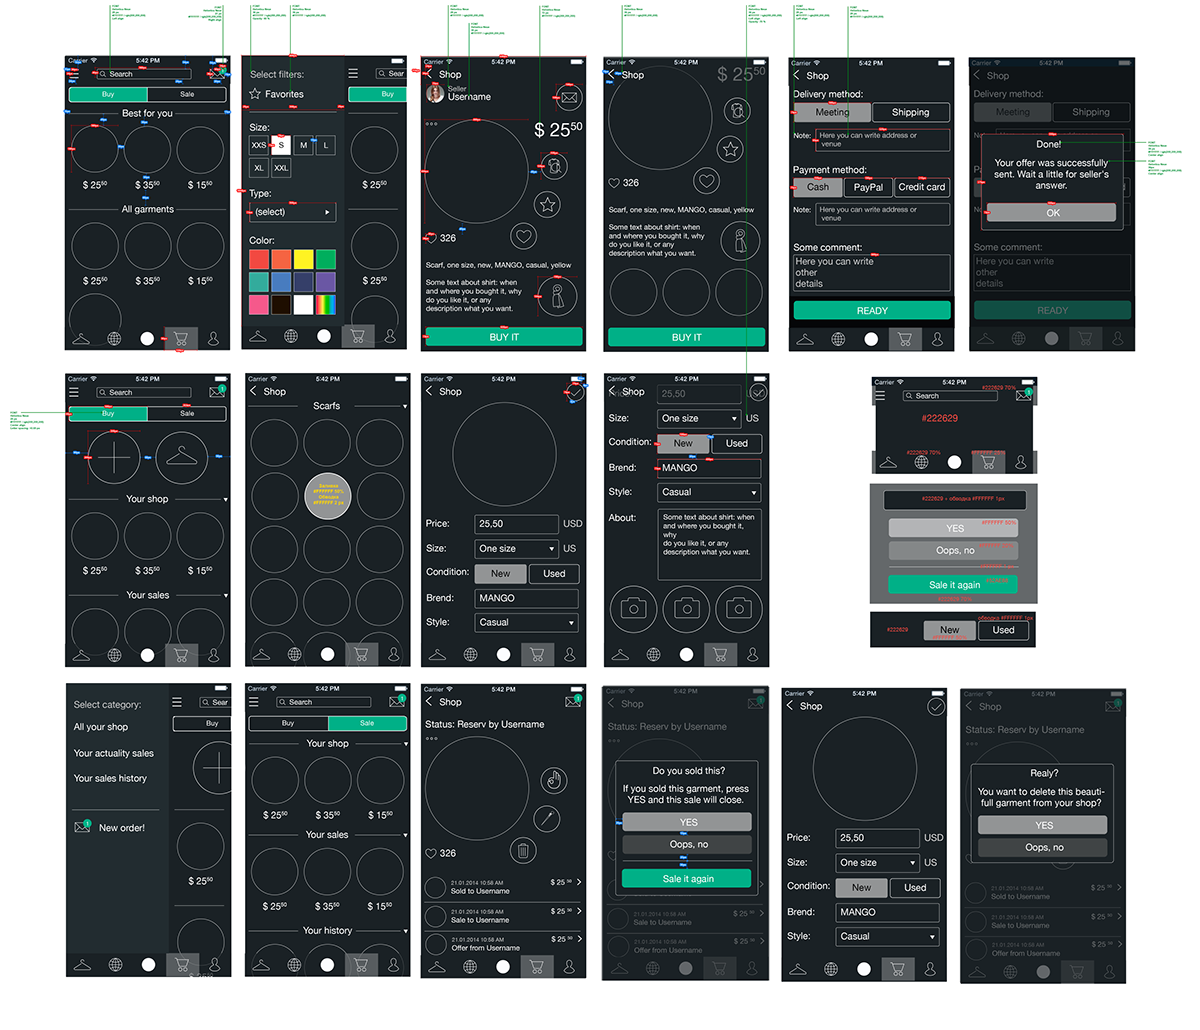 UI android ios